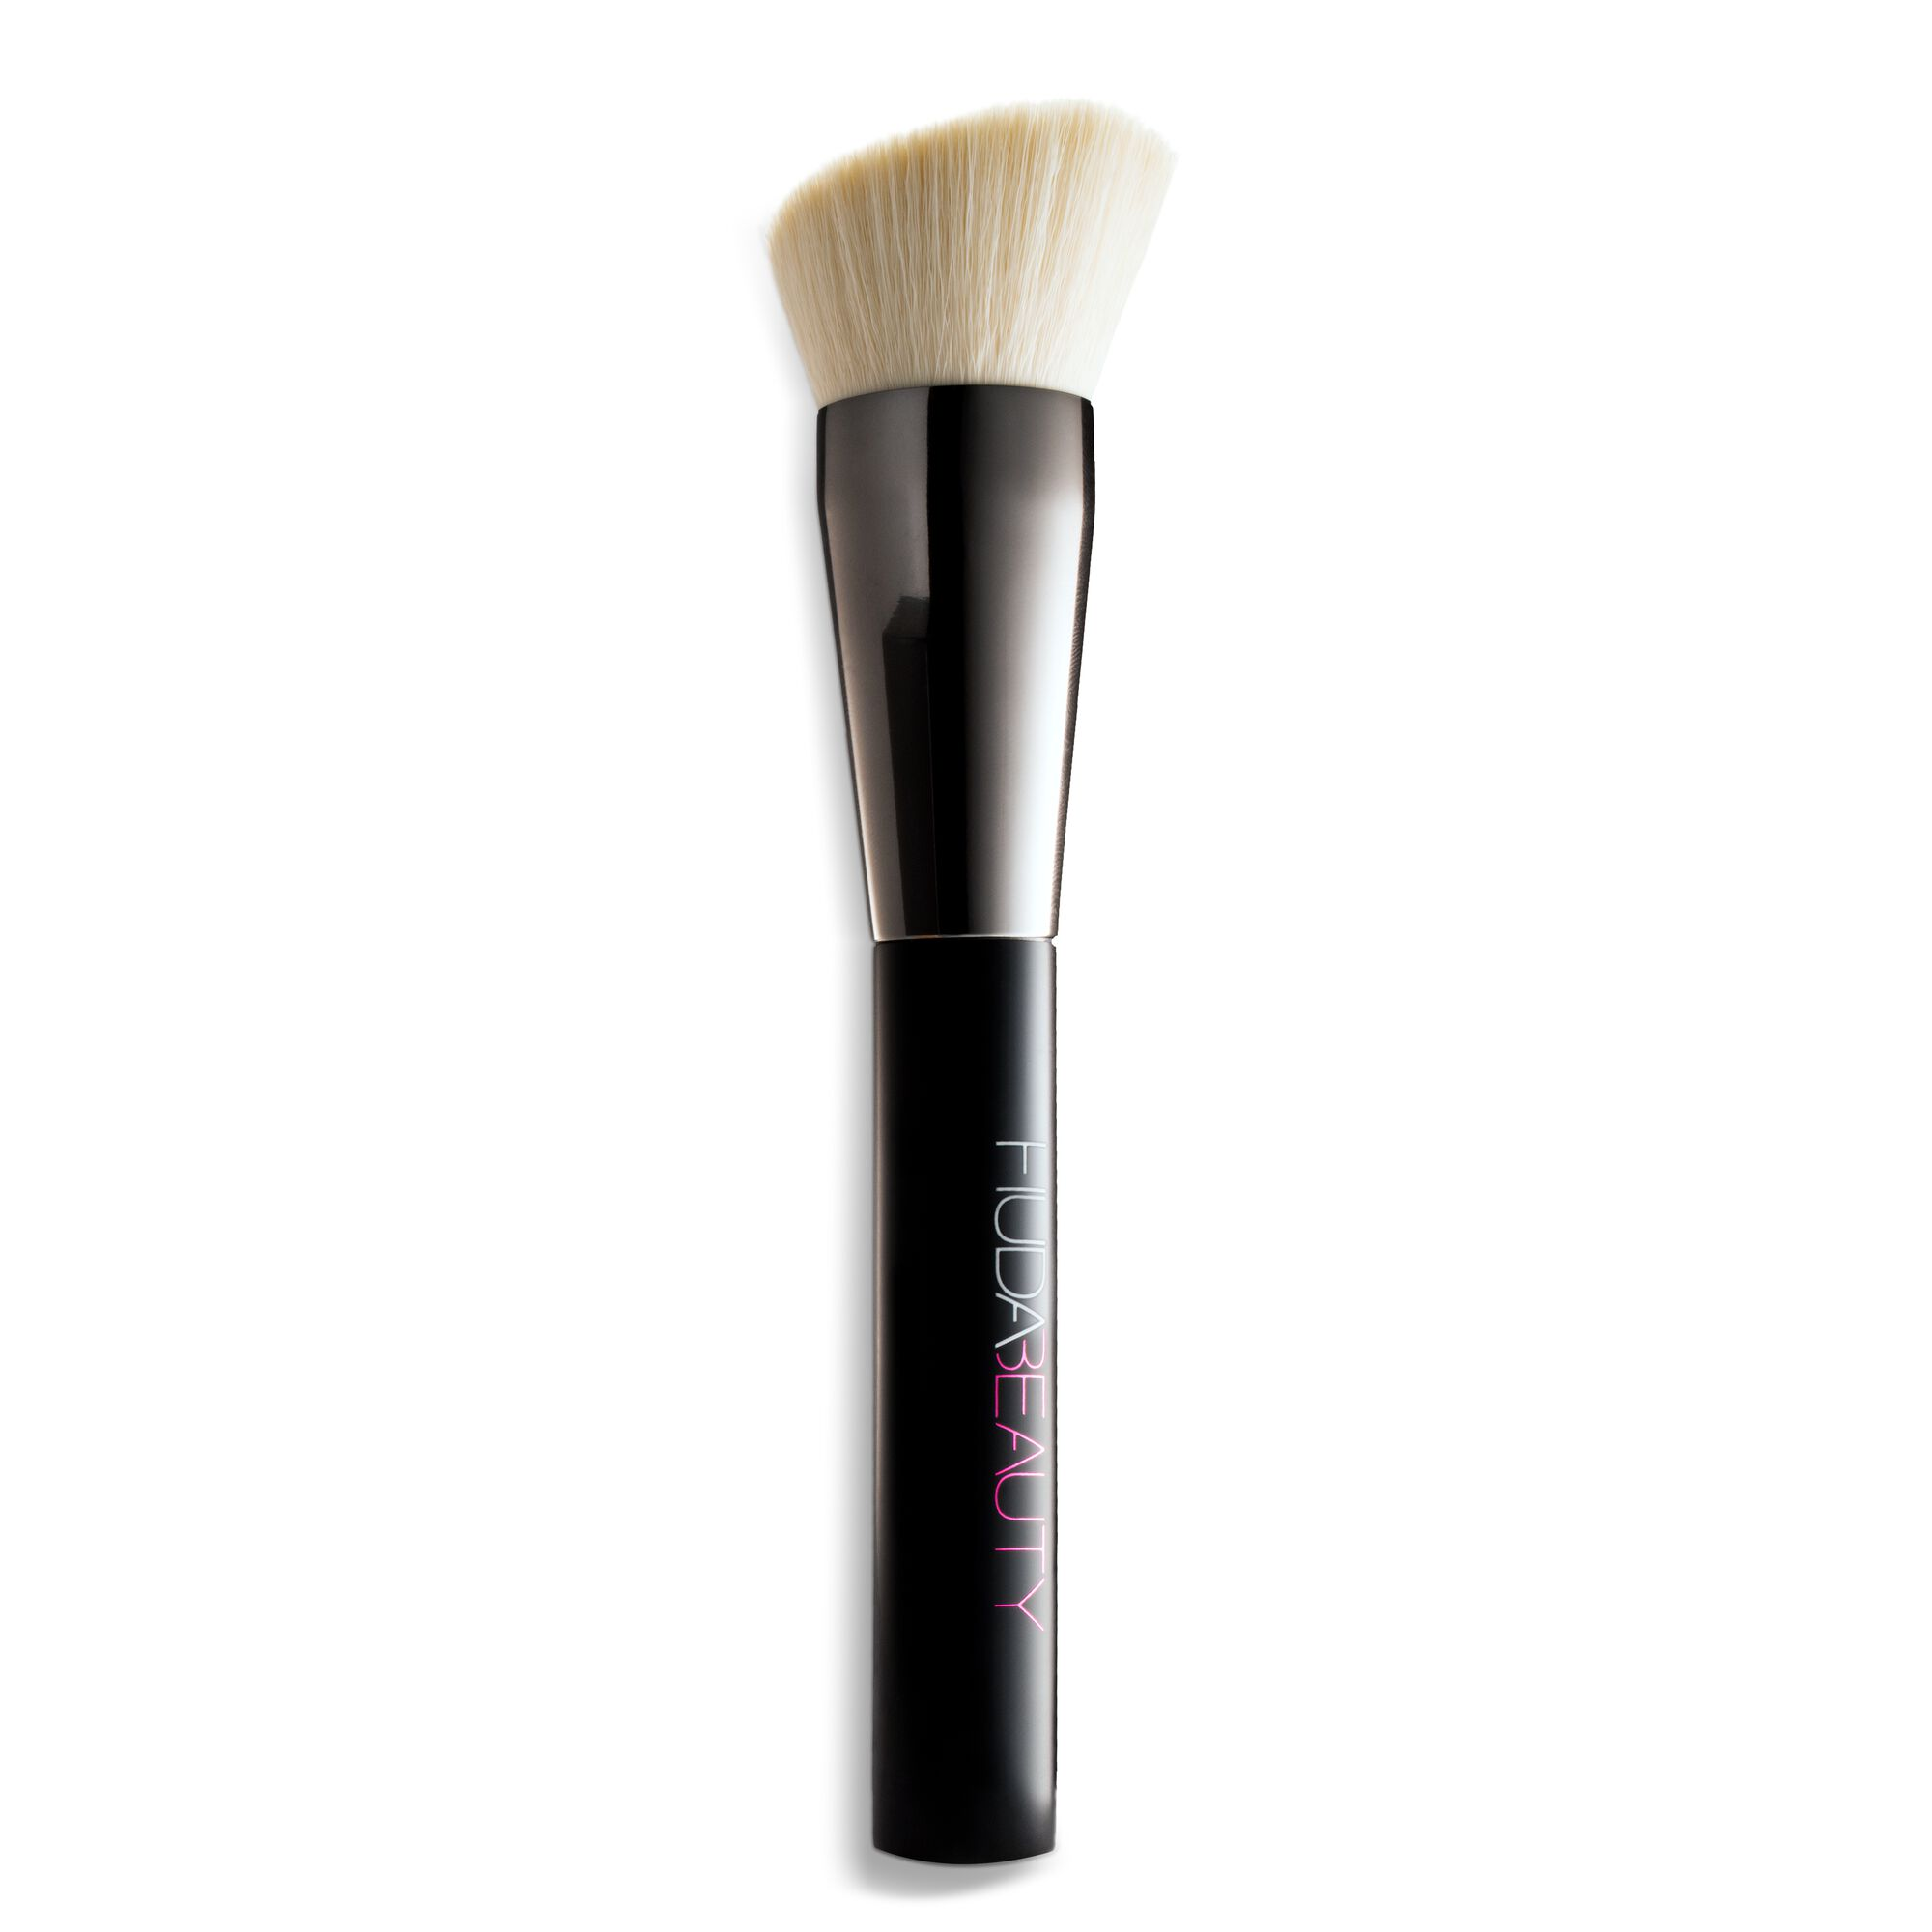 Face Buff & Blend Brush